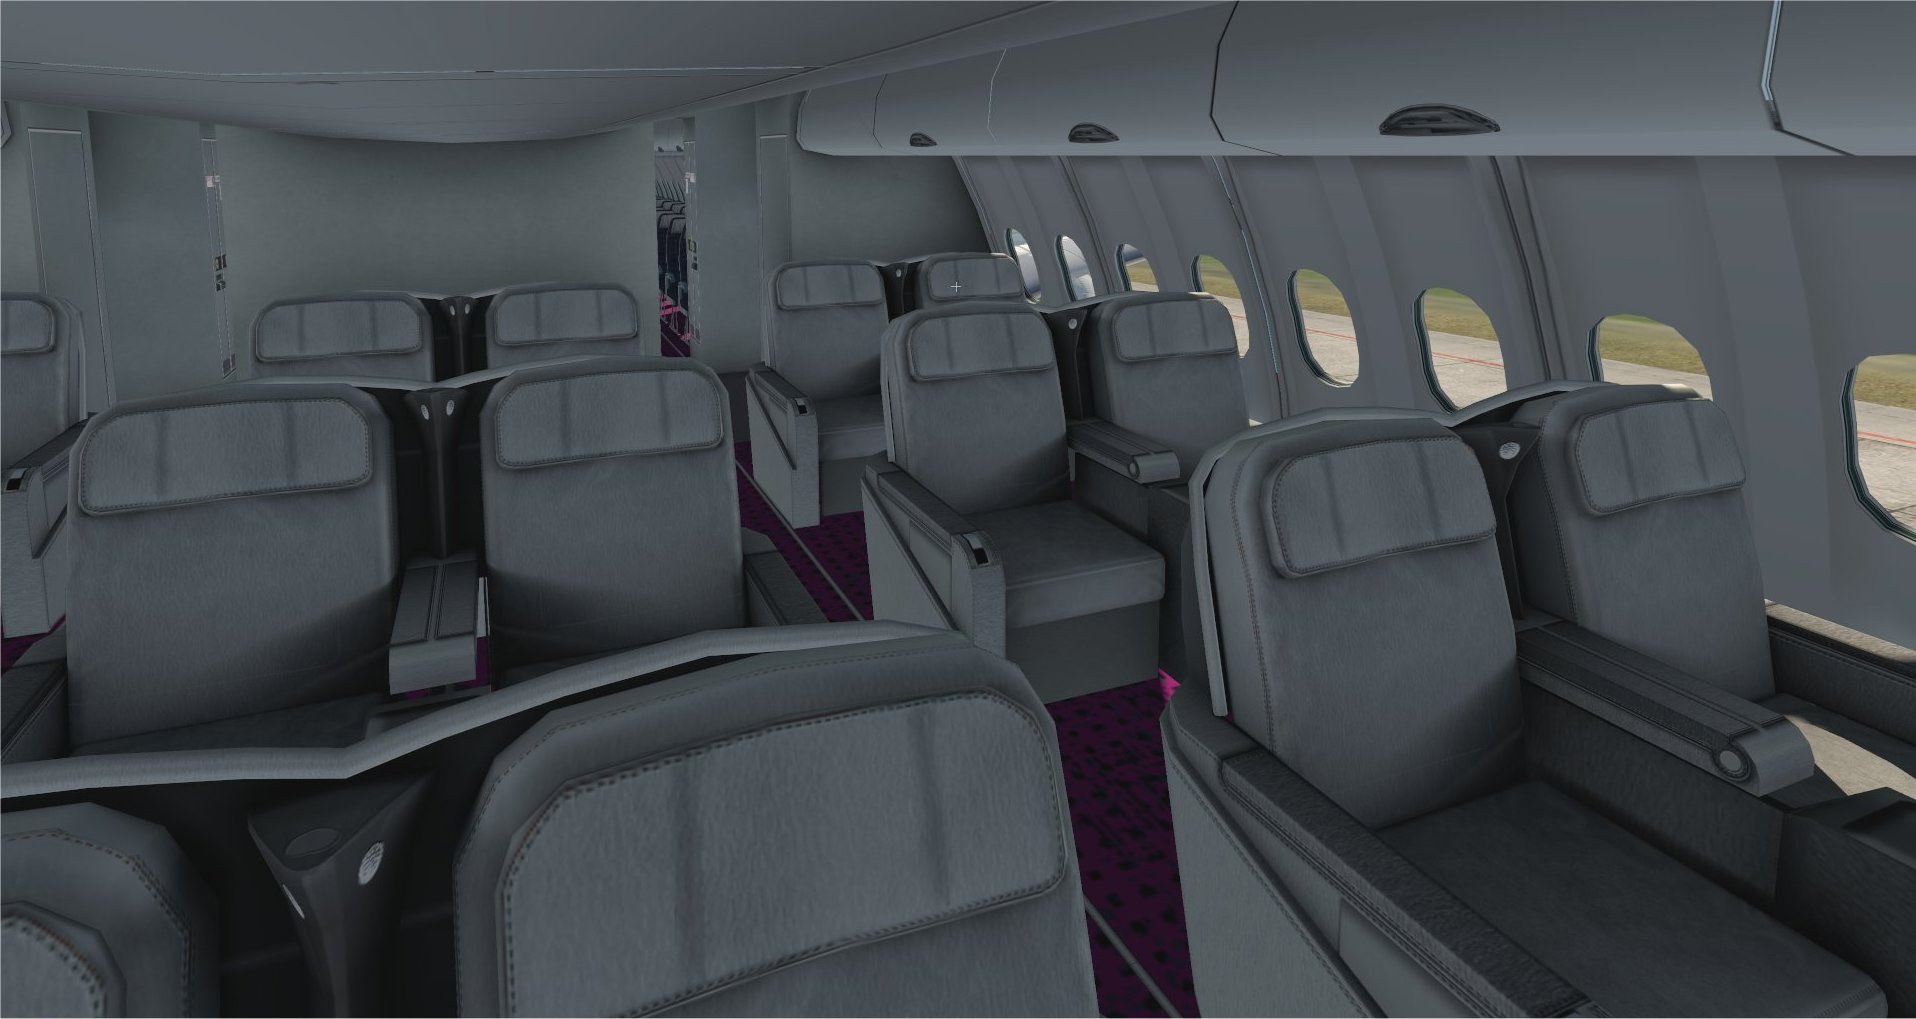 New cabin for livery WOW air A330-300, by Christian Fonck